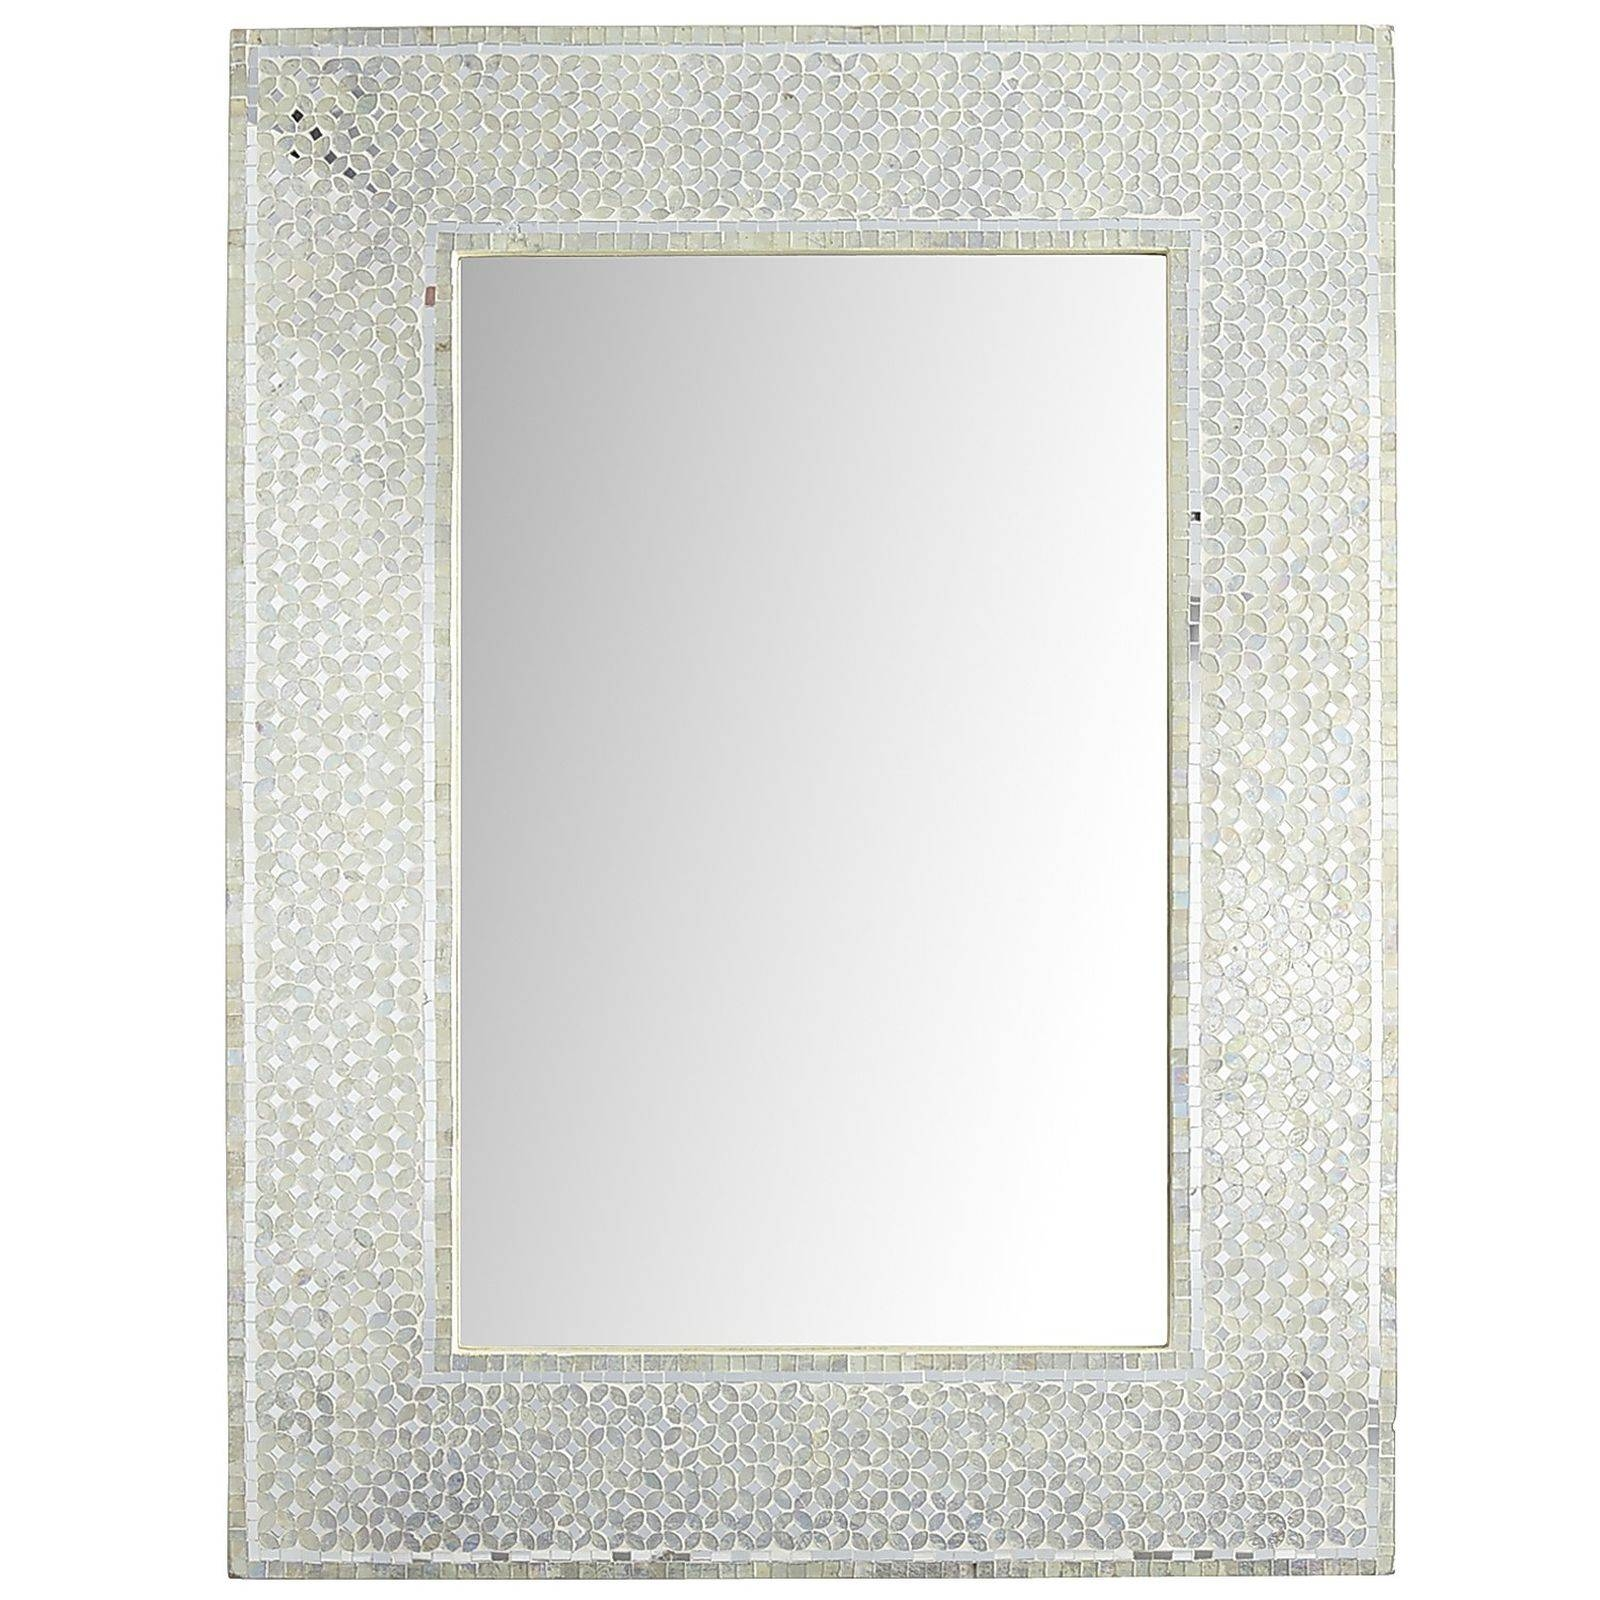 Large White Quatrefoil Mirror Vanity Decoration In Mosaic Mirrors Image 9 Of 15